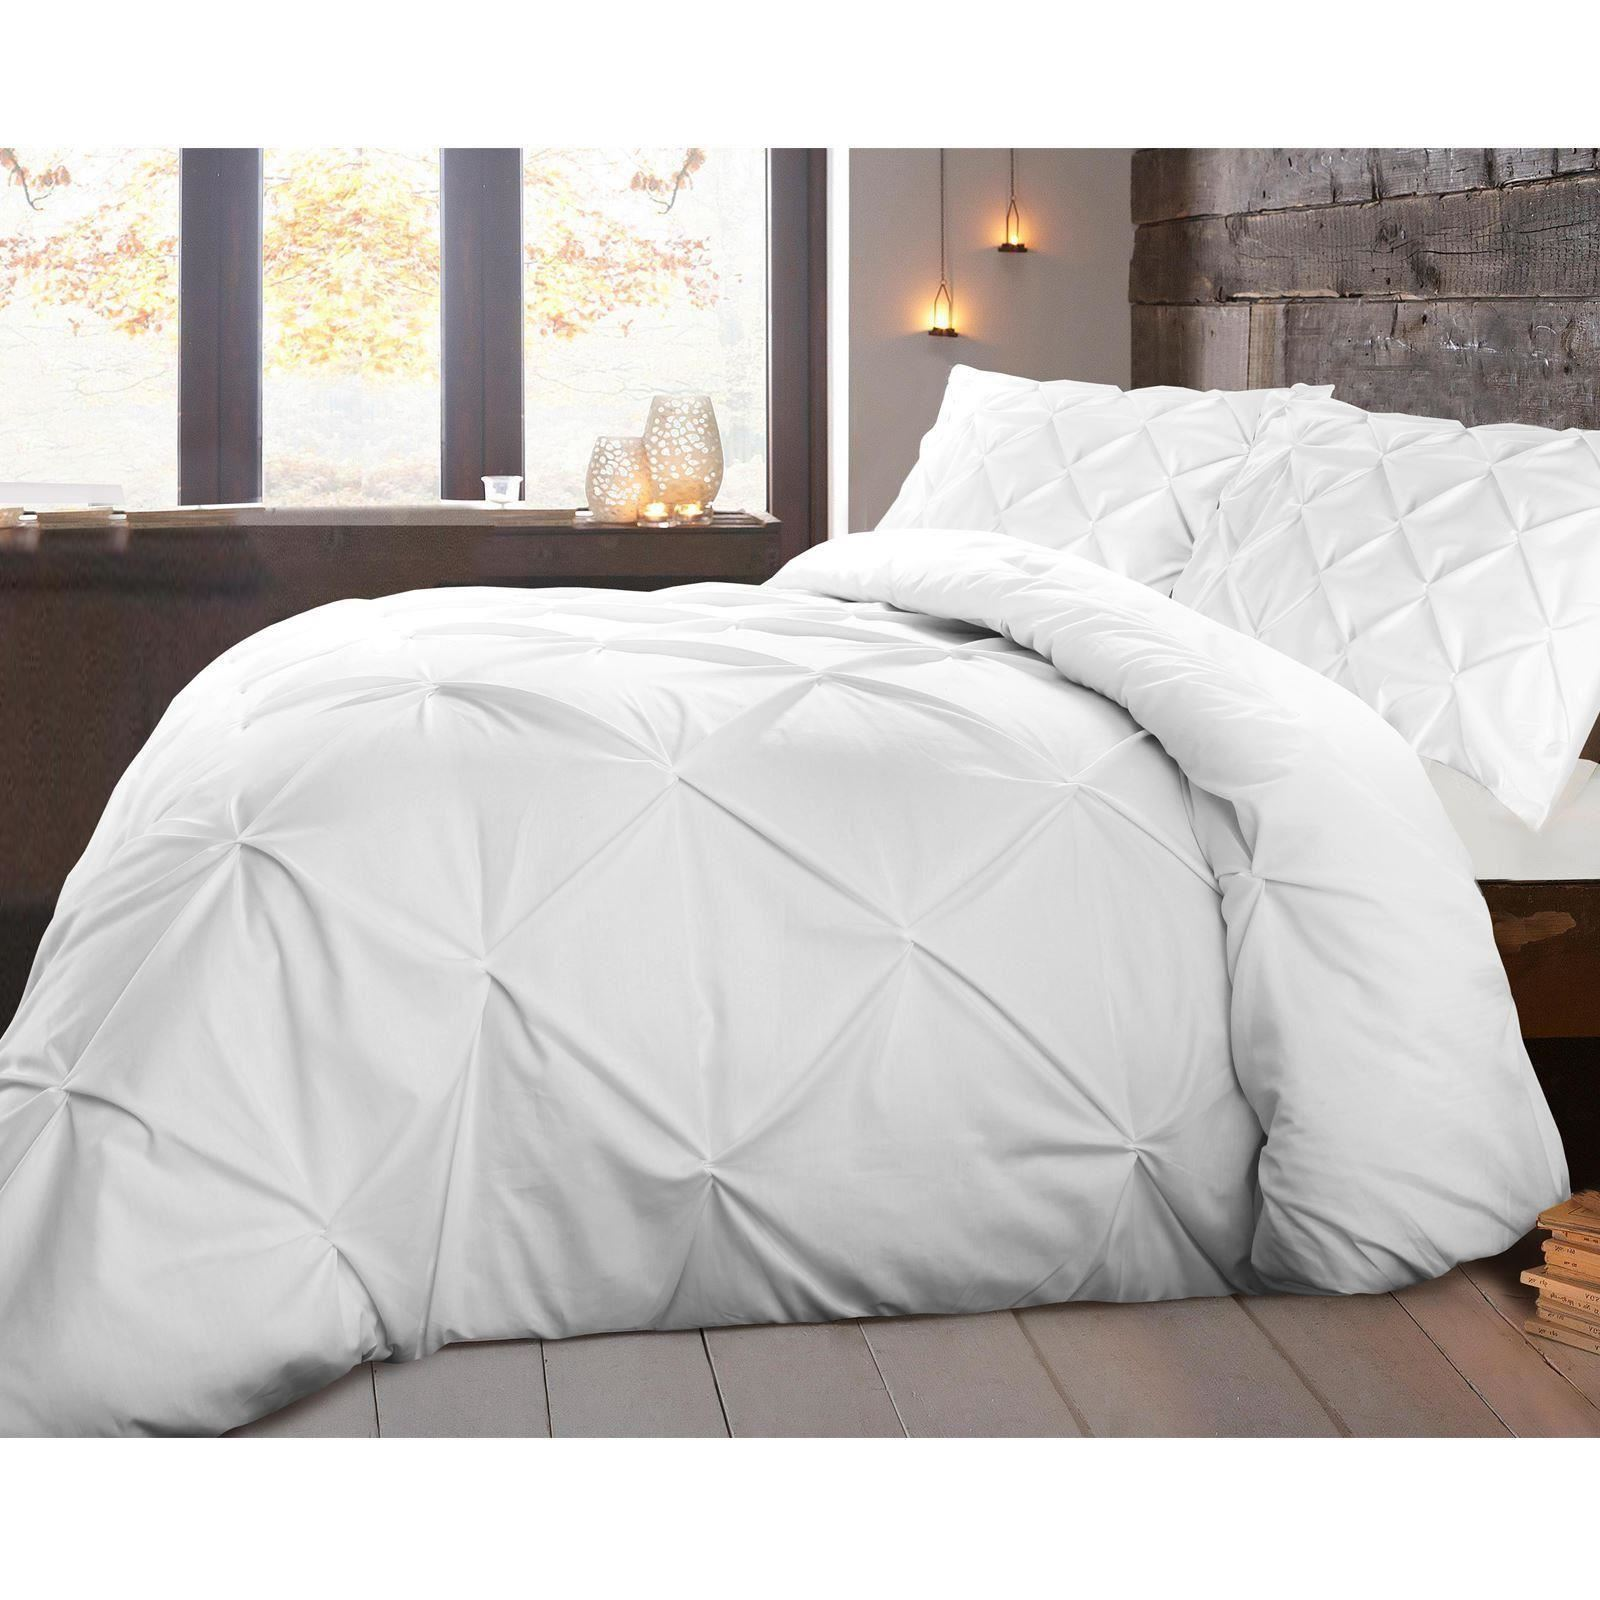 pleat puckering pintuck pinched set shabby duvet chic luxury red pinch cover cottage bedding